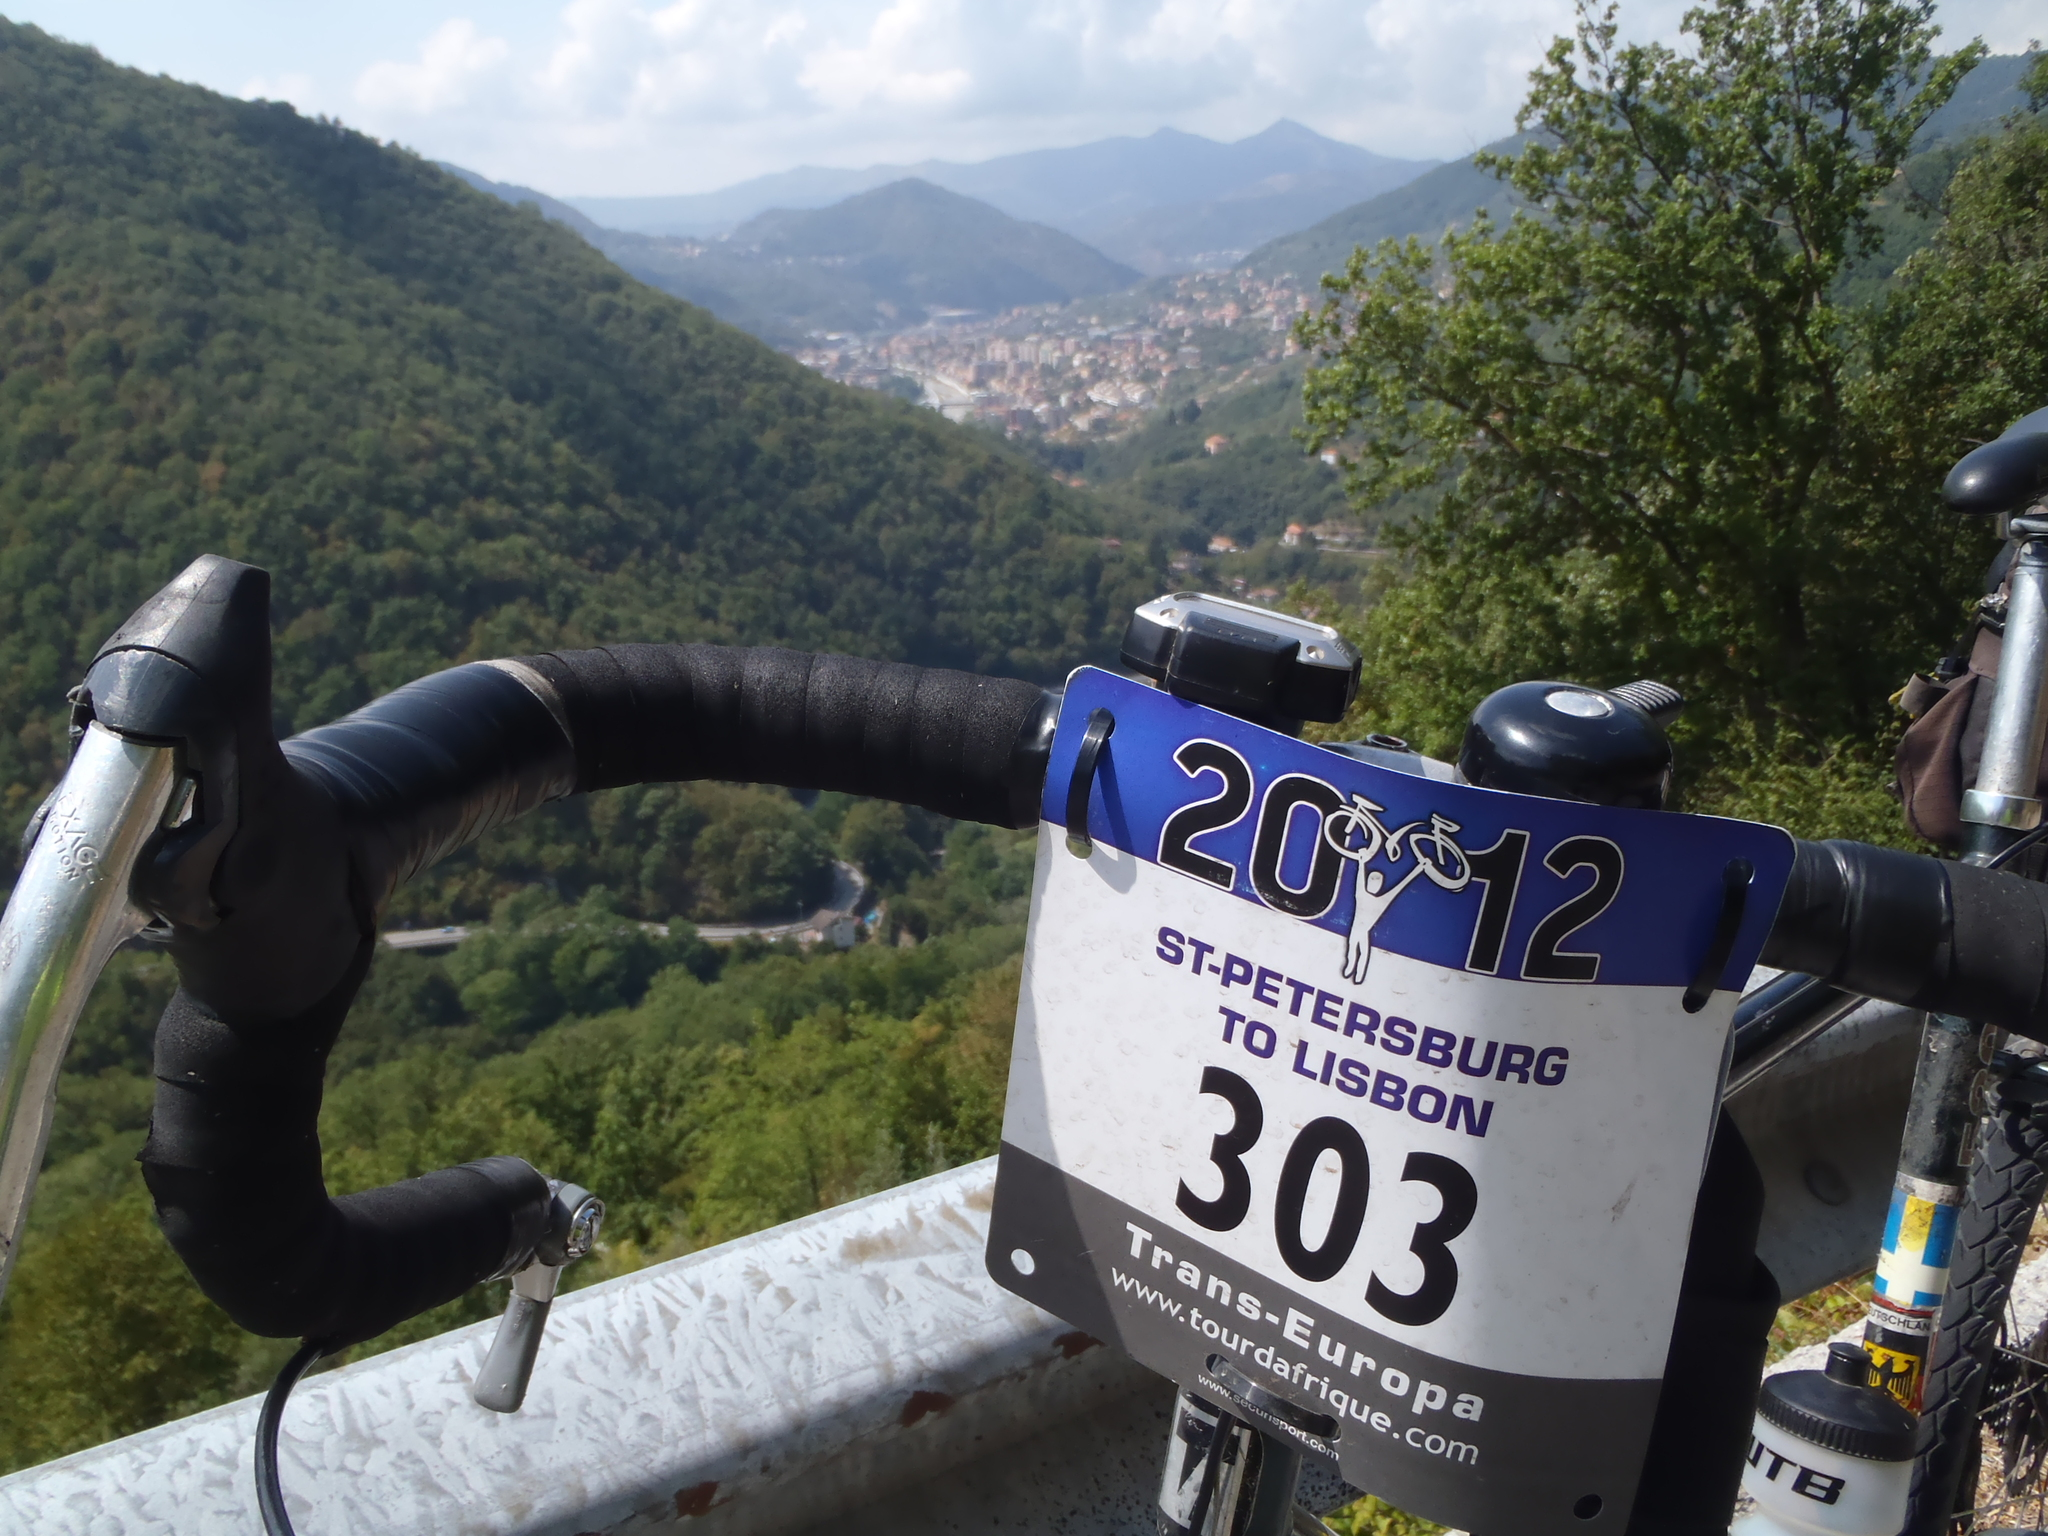 20 Reasons to cycle the 2014 Trans-Europa